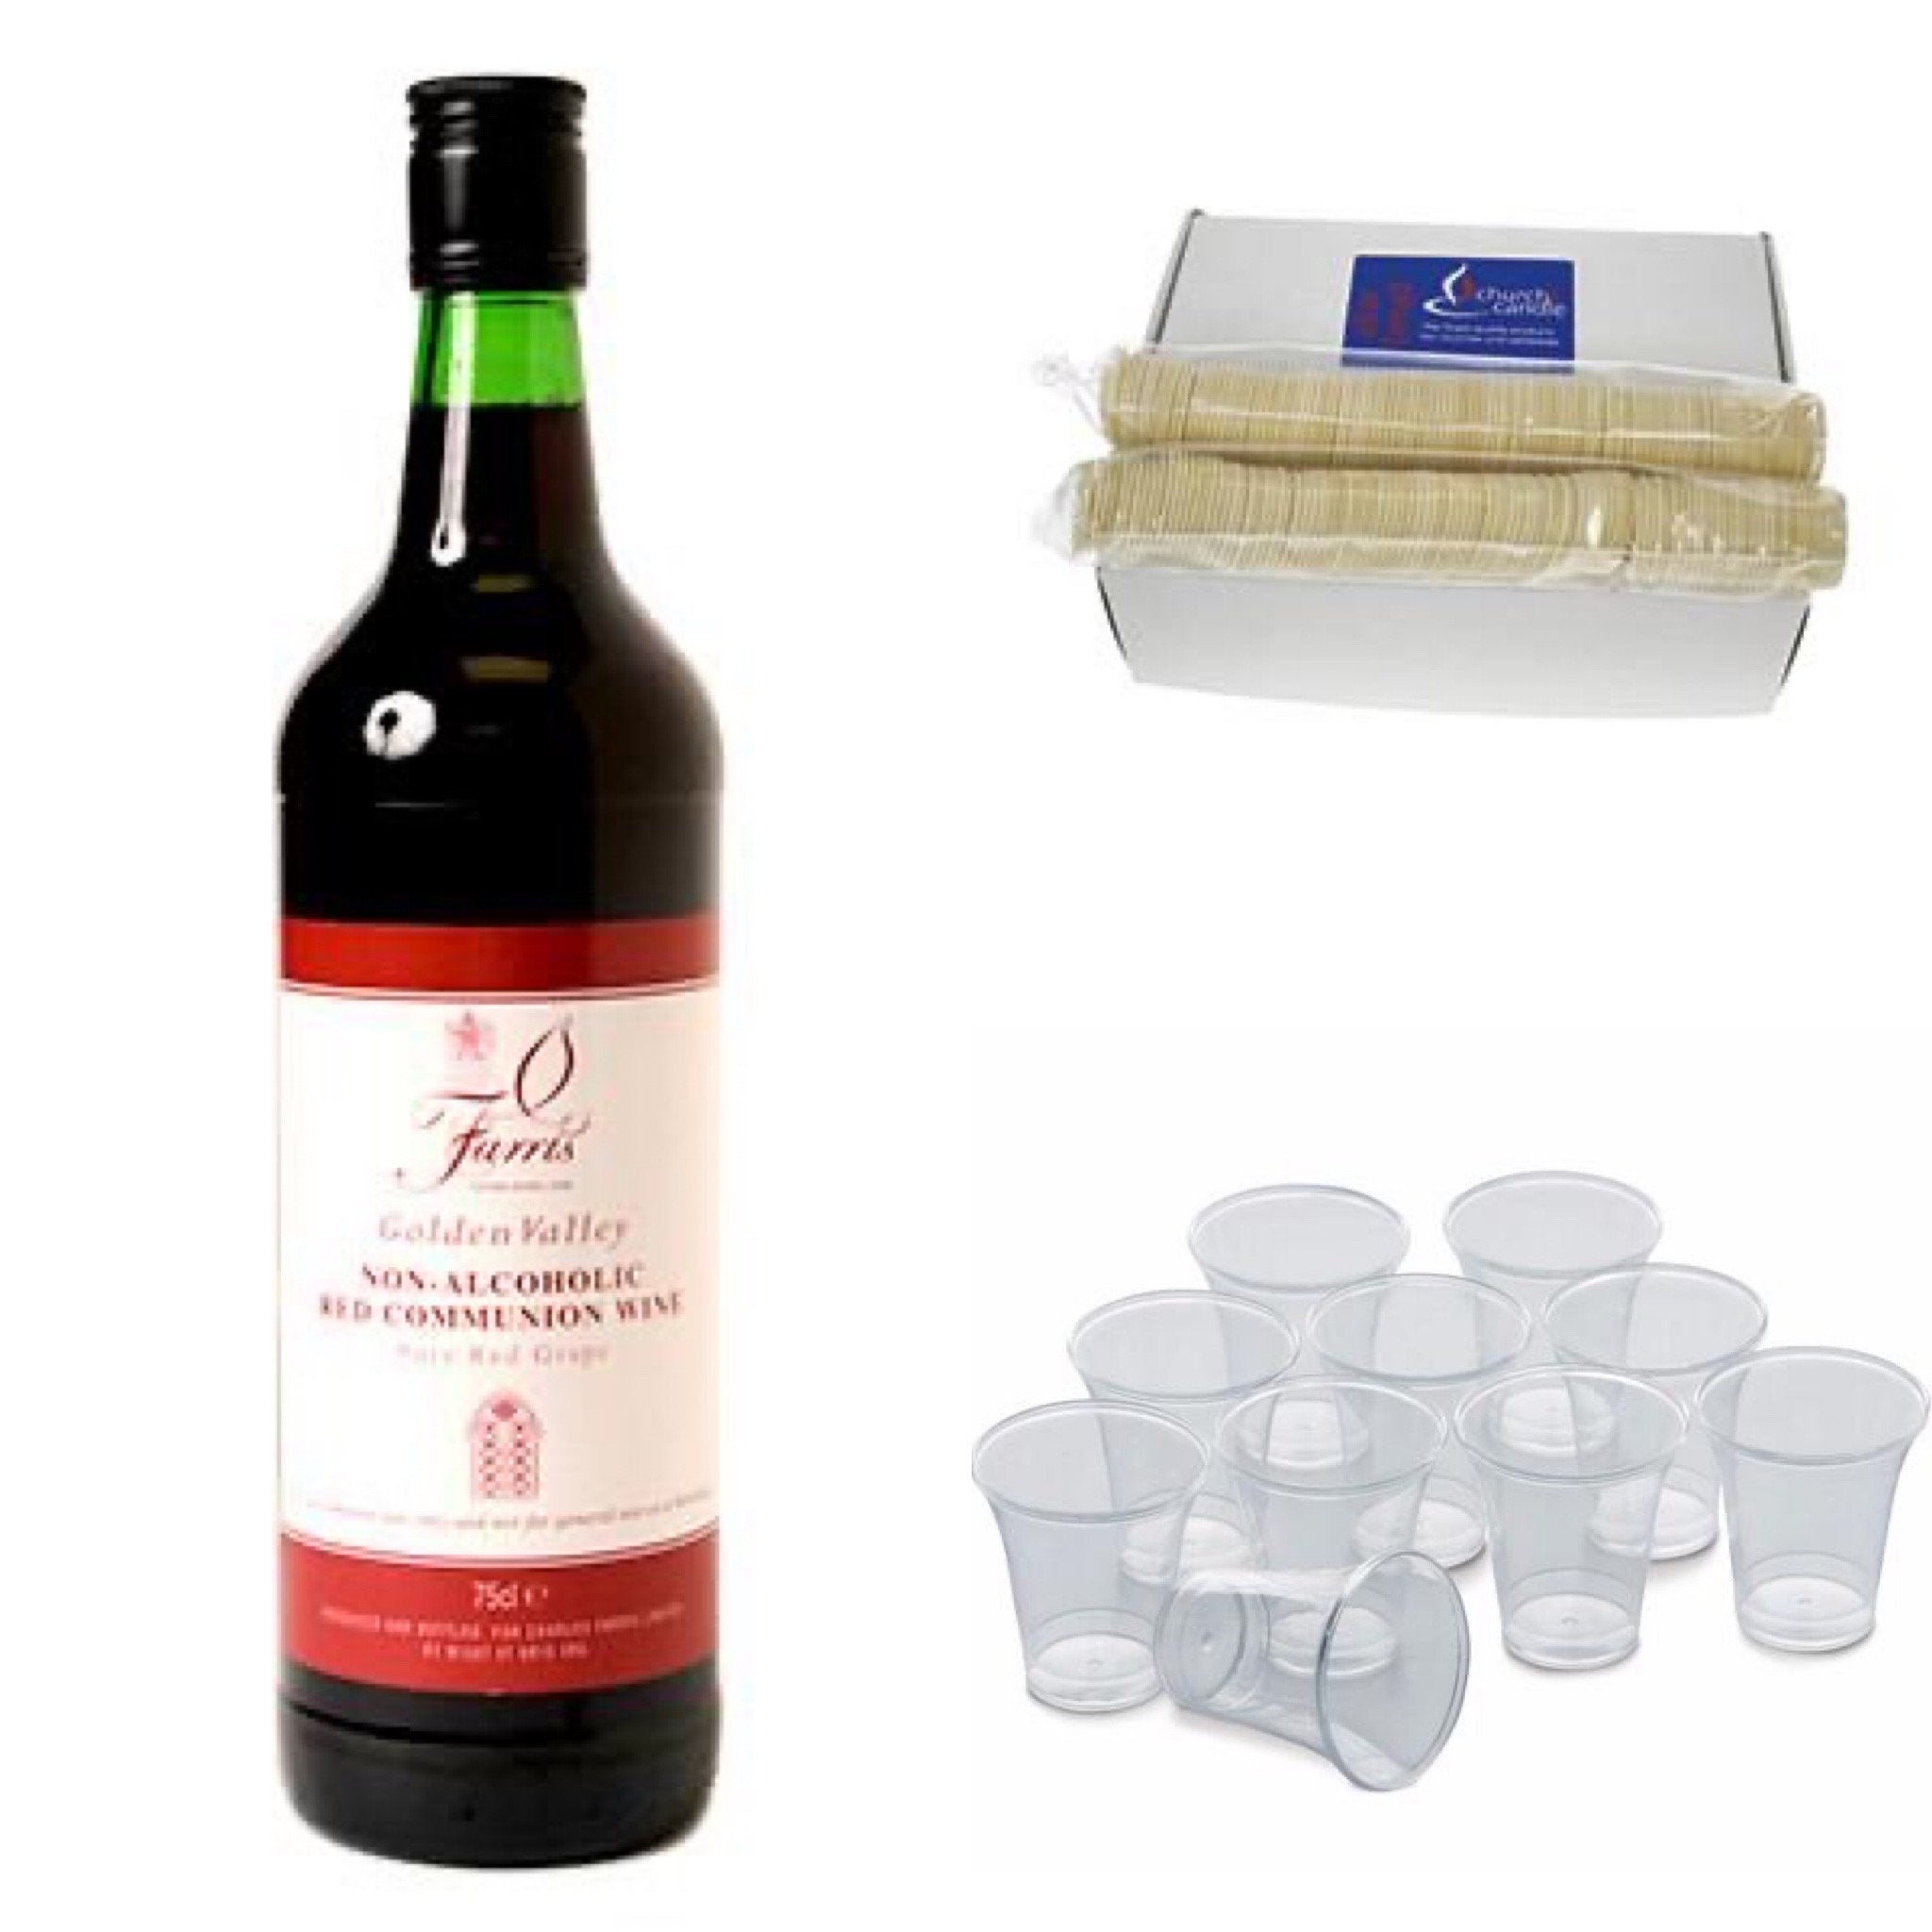 Home Communion Pack (3 items) (Non-alcoholic/alcoholic wine options)